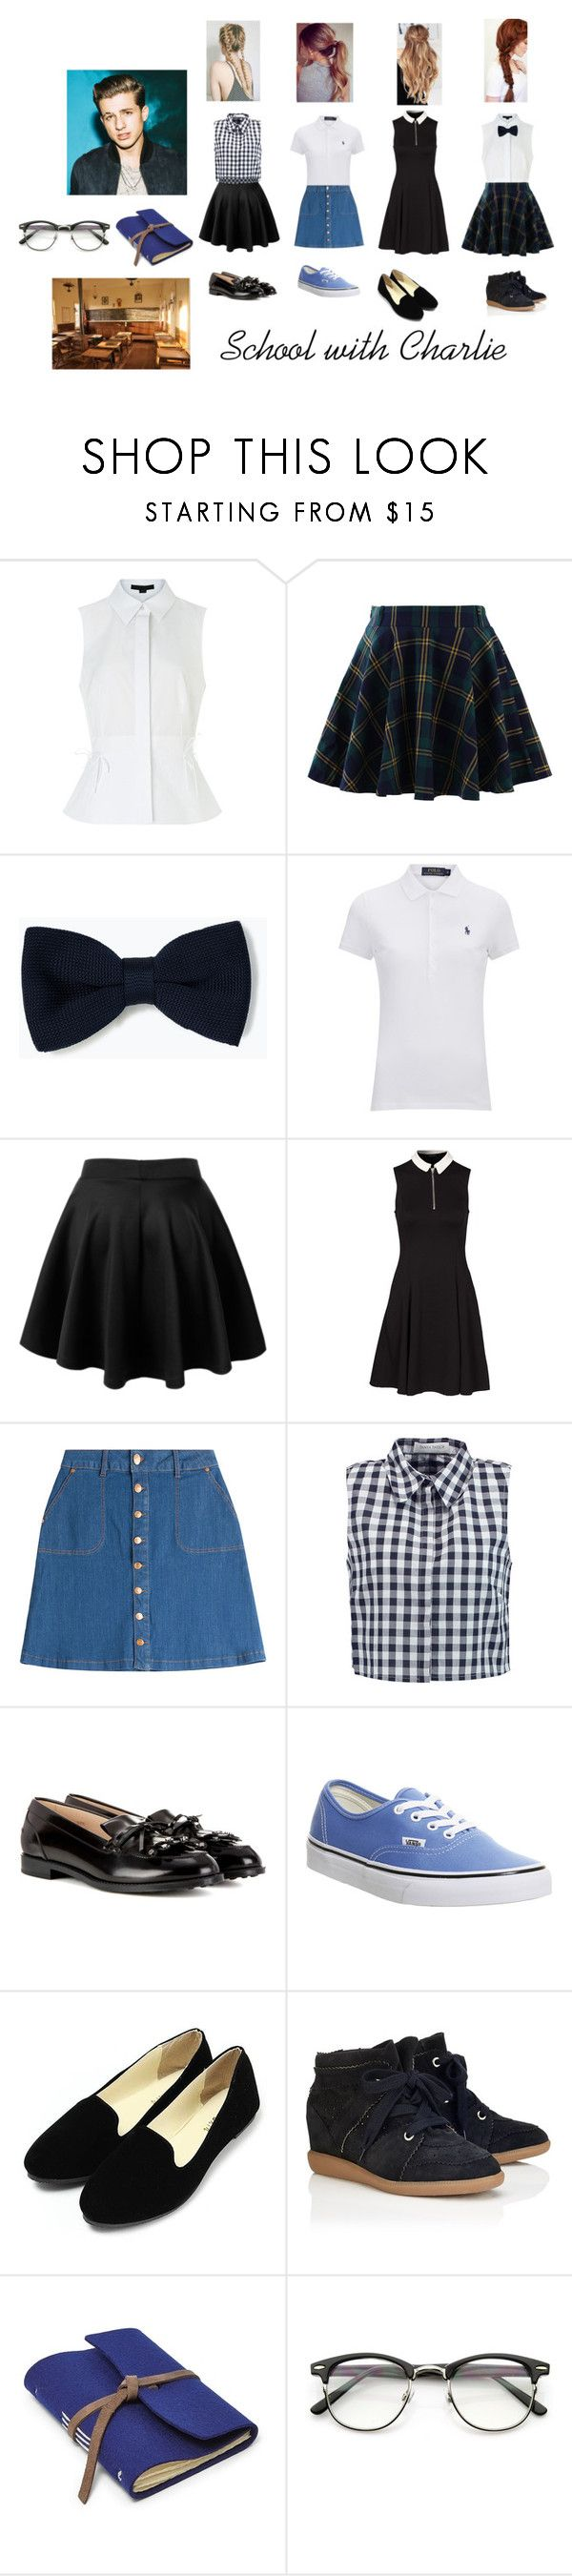 School with Charlie by flowerdreams on Polyvore featuring New Look, Polo Ralph Lauren, Alexander Wang, Tanya Taylor, Chicwish, HUGO, Étoile Isabel Marant, Tod's, Vans and Zara